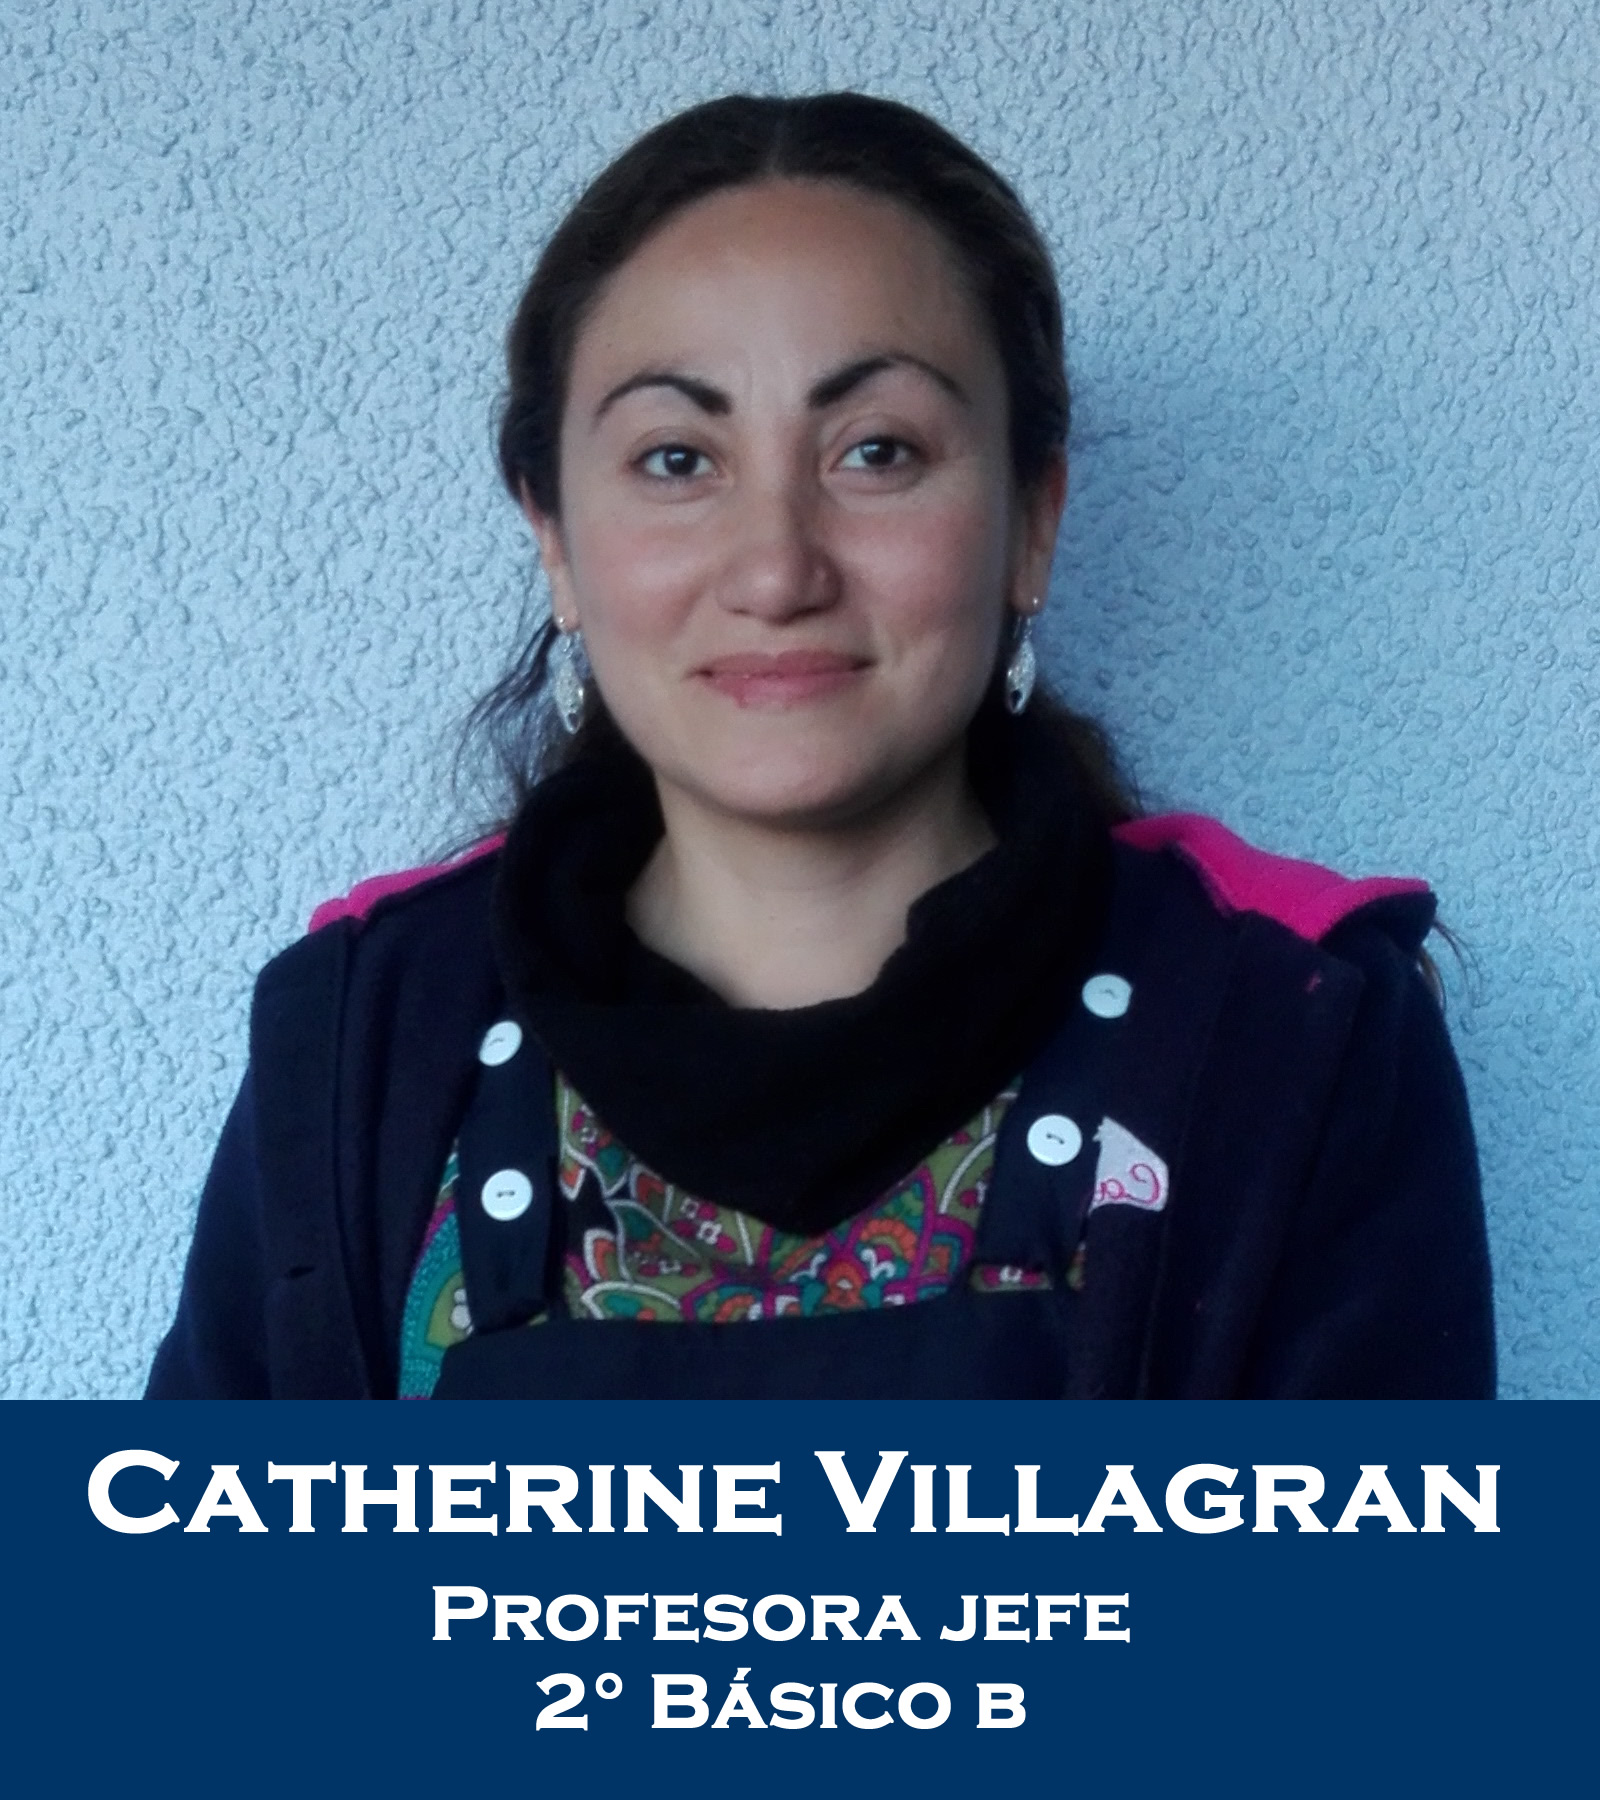 Catherine Villagran